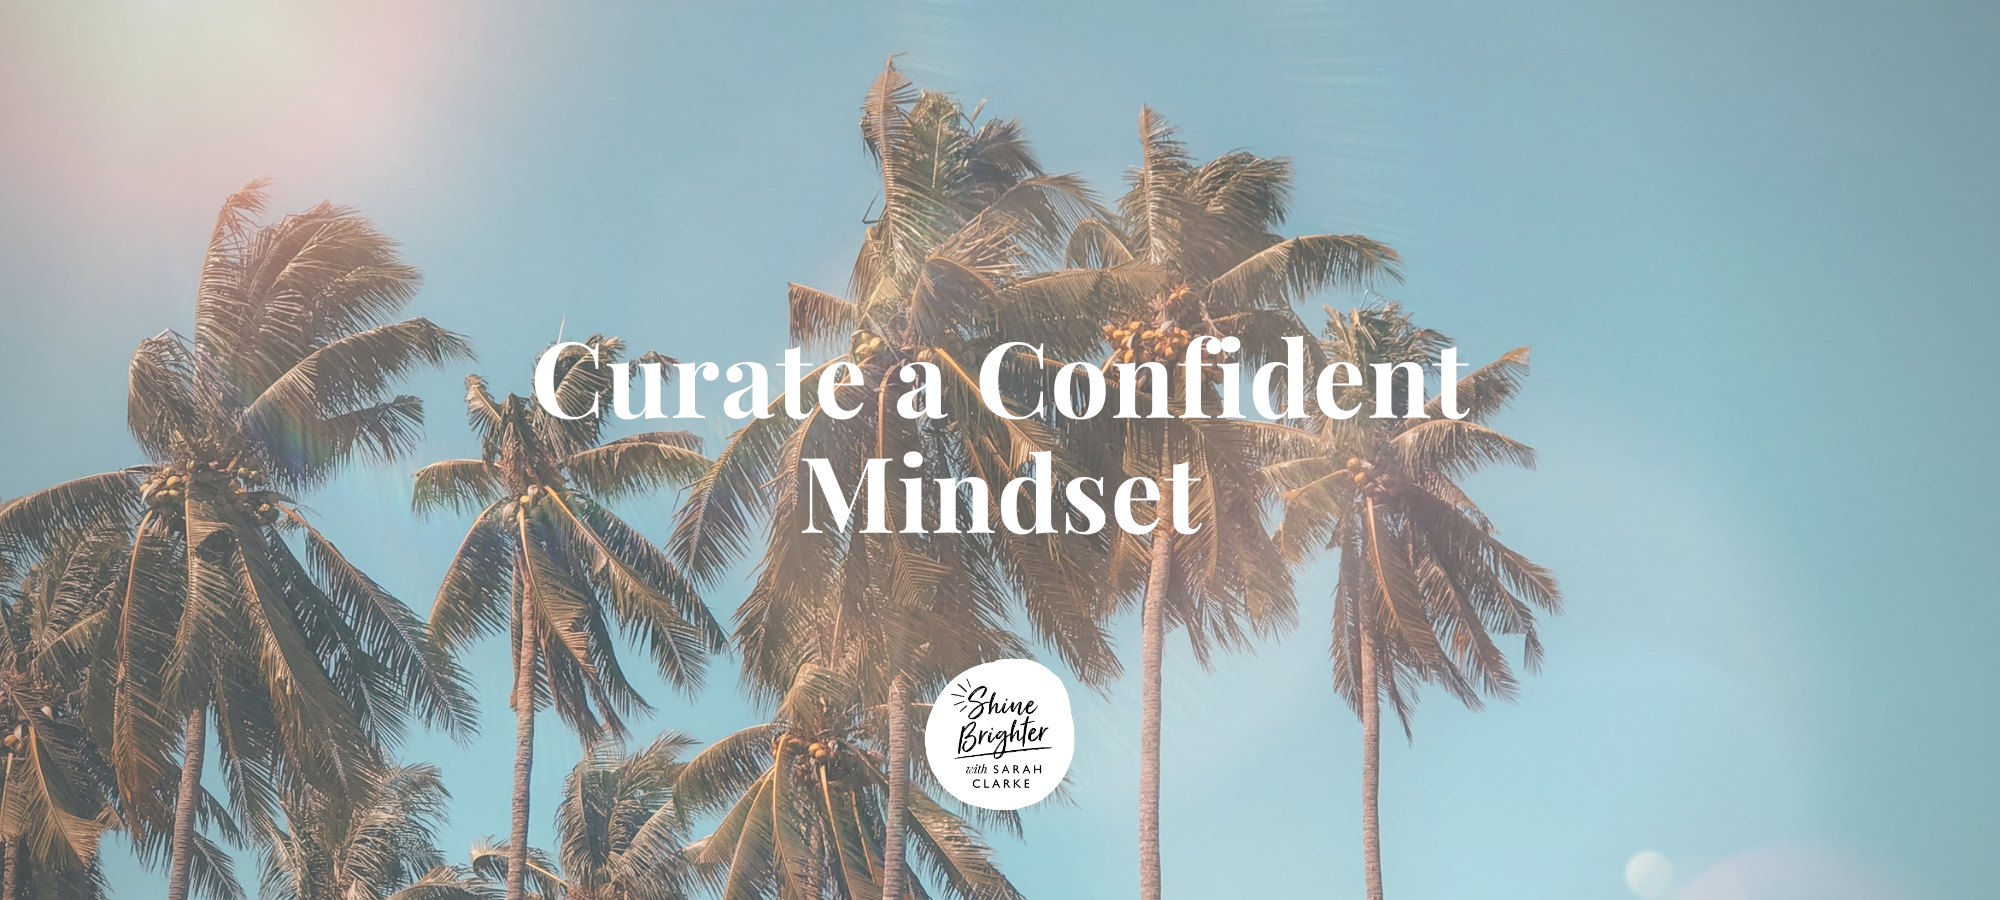 Curate a Confident Mindset Mini course